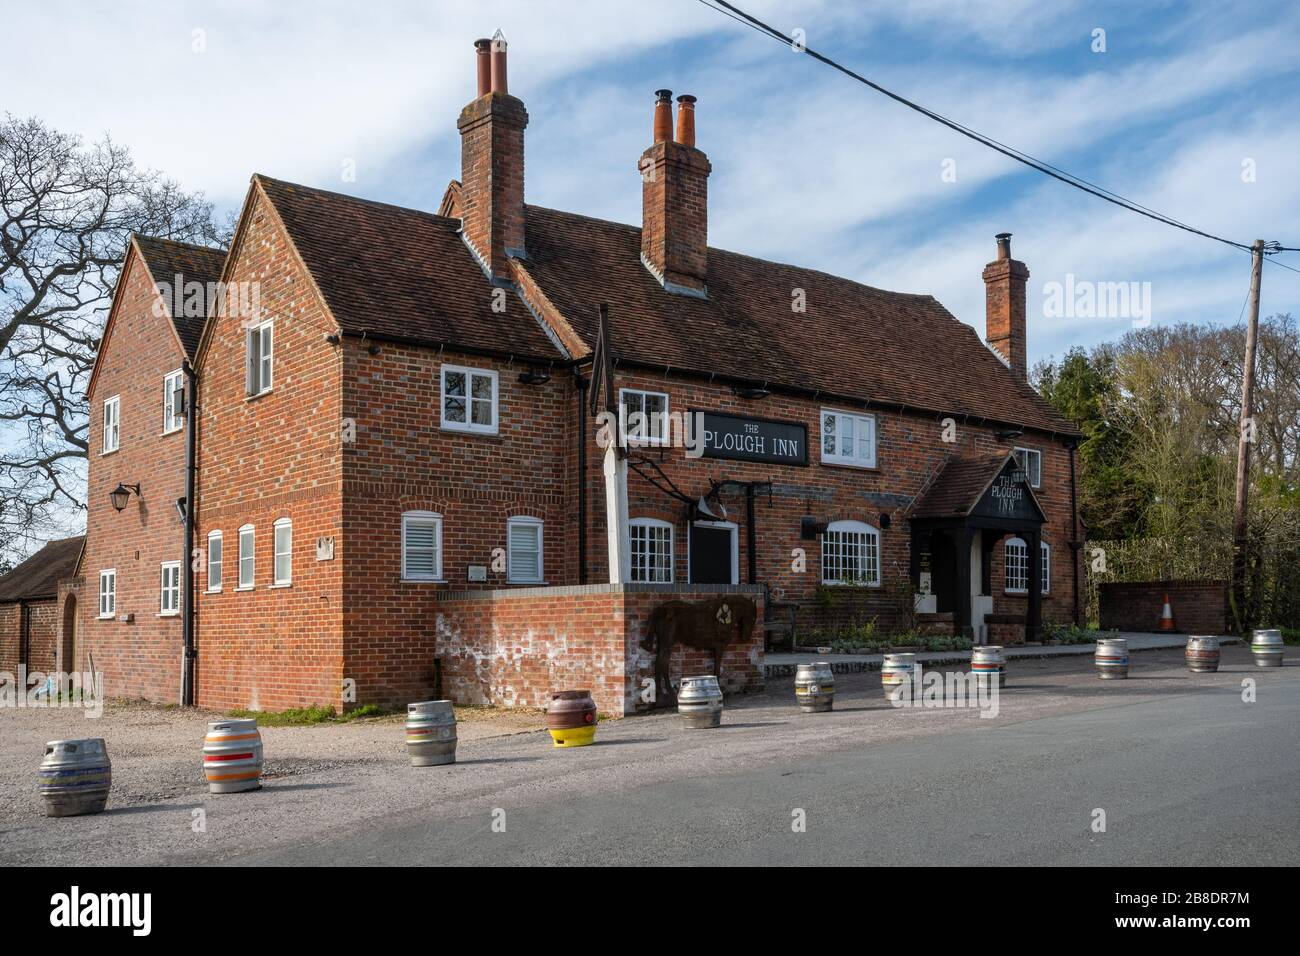 English pub closed due to the covid-19 coronavirus pandemic, with beer kegs lined up in front. The Plough Inn, village of Little London, Hampshire, UK Stock Photo